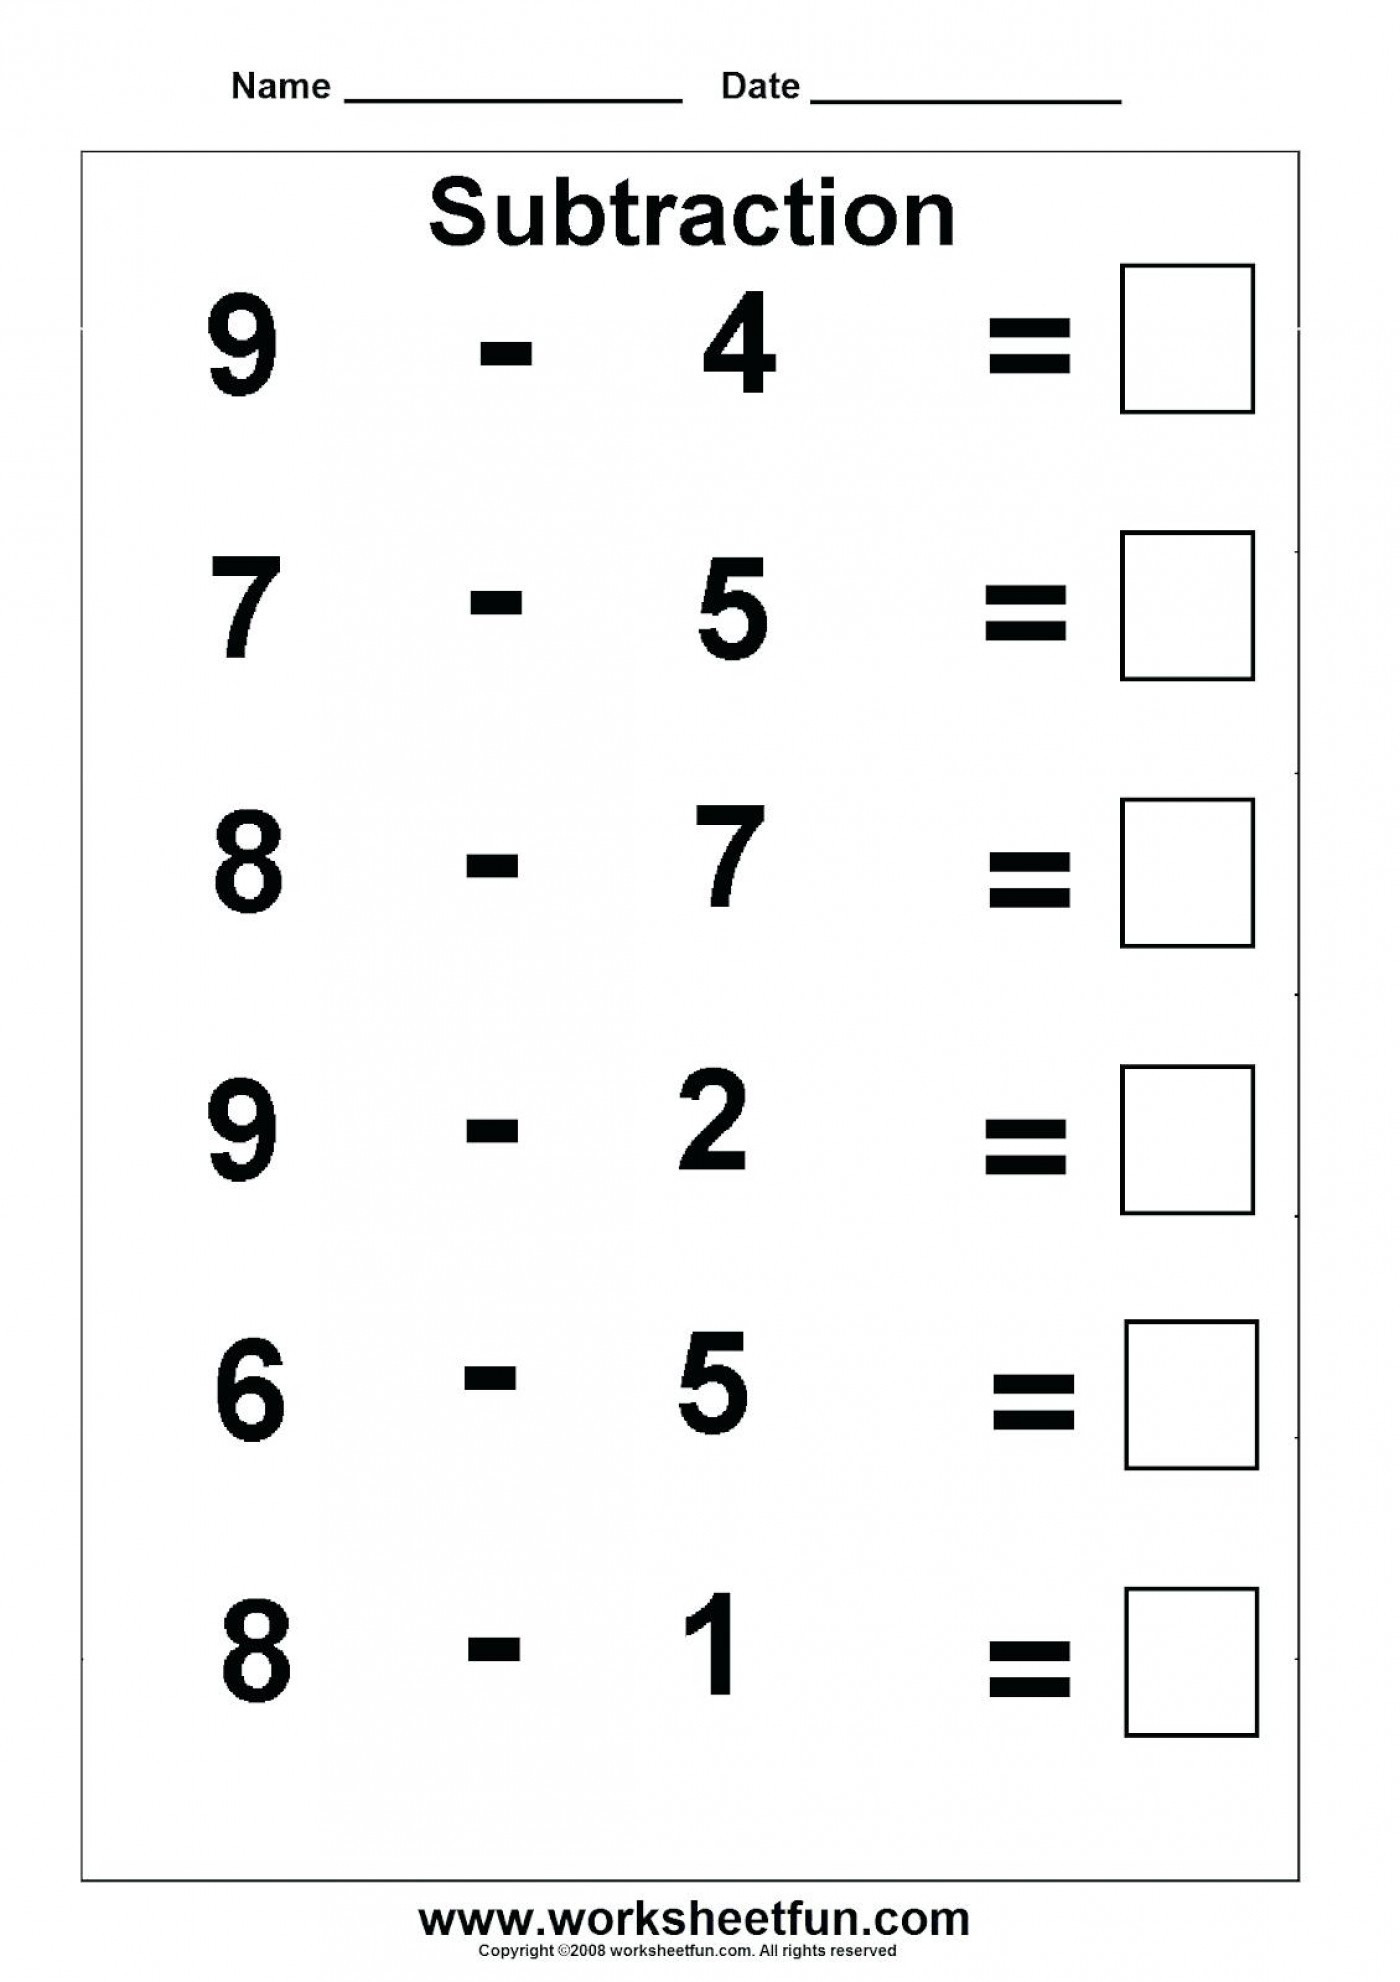 30 Subtracting Whole Numbers Worksheets